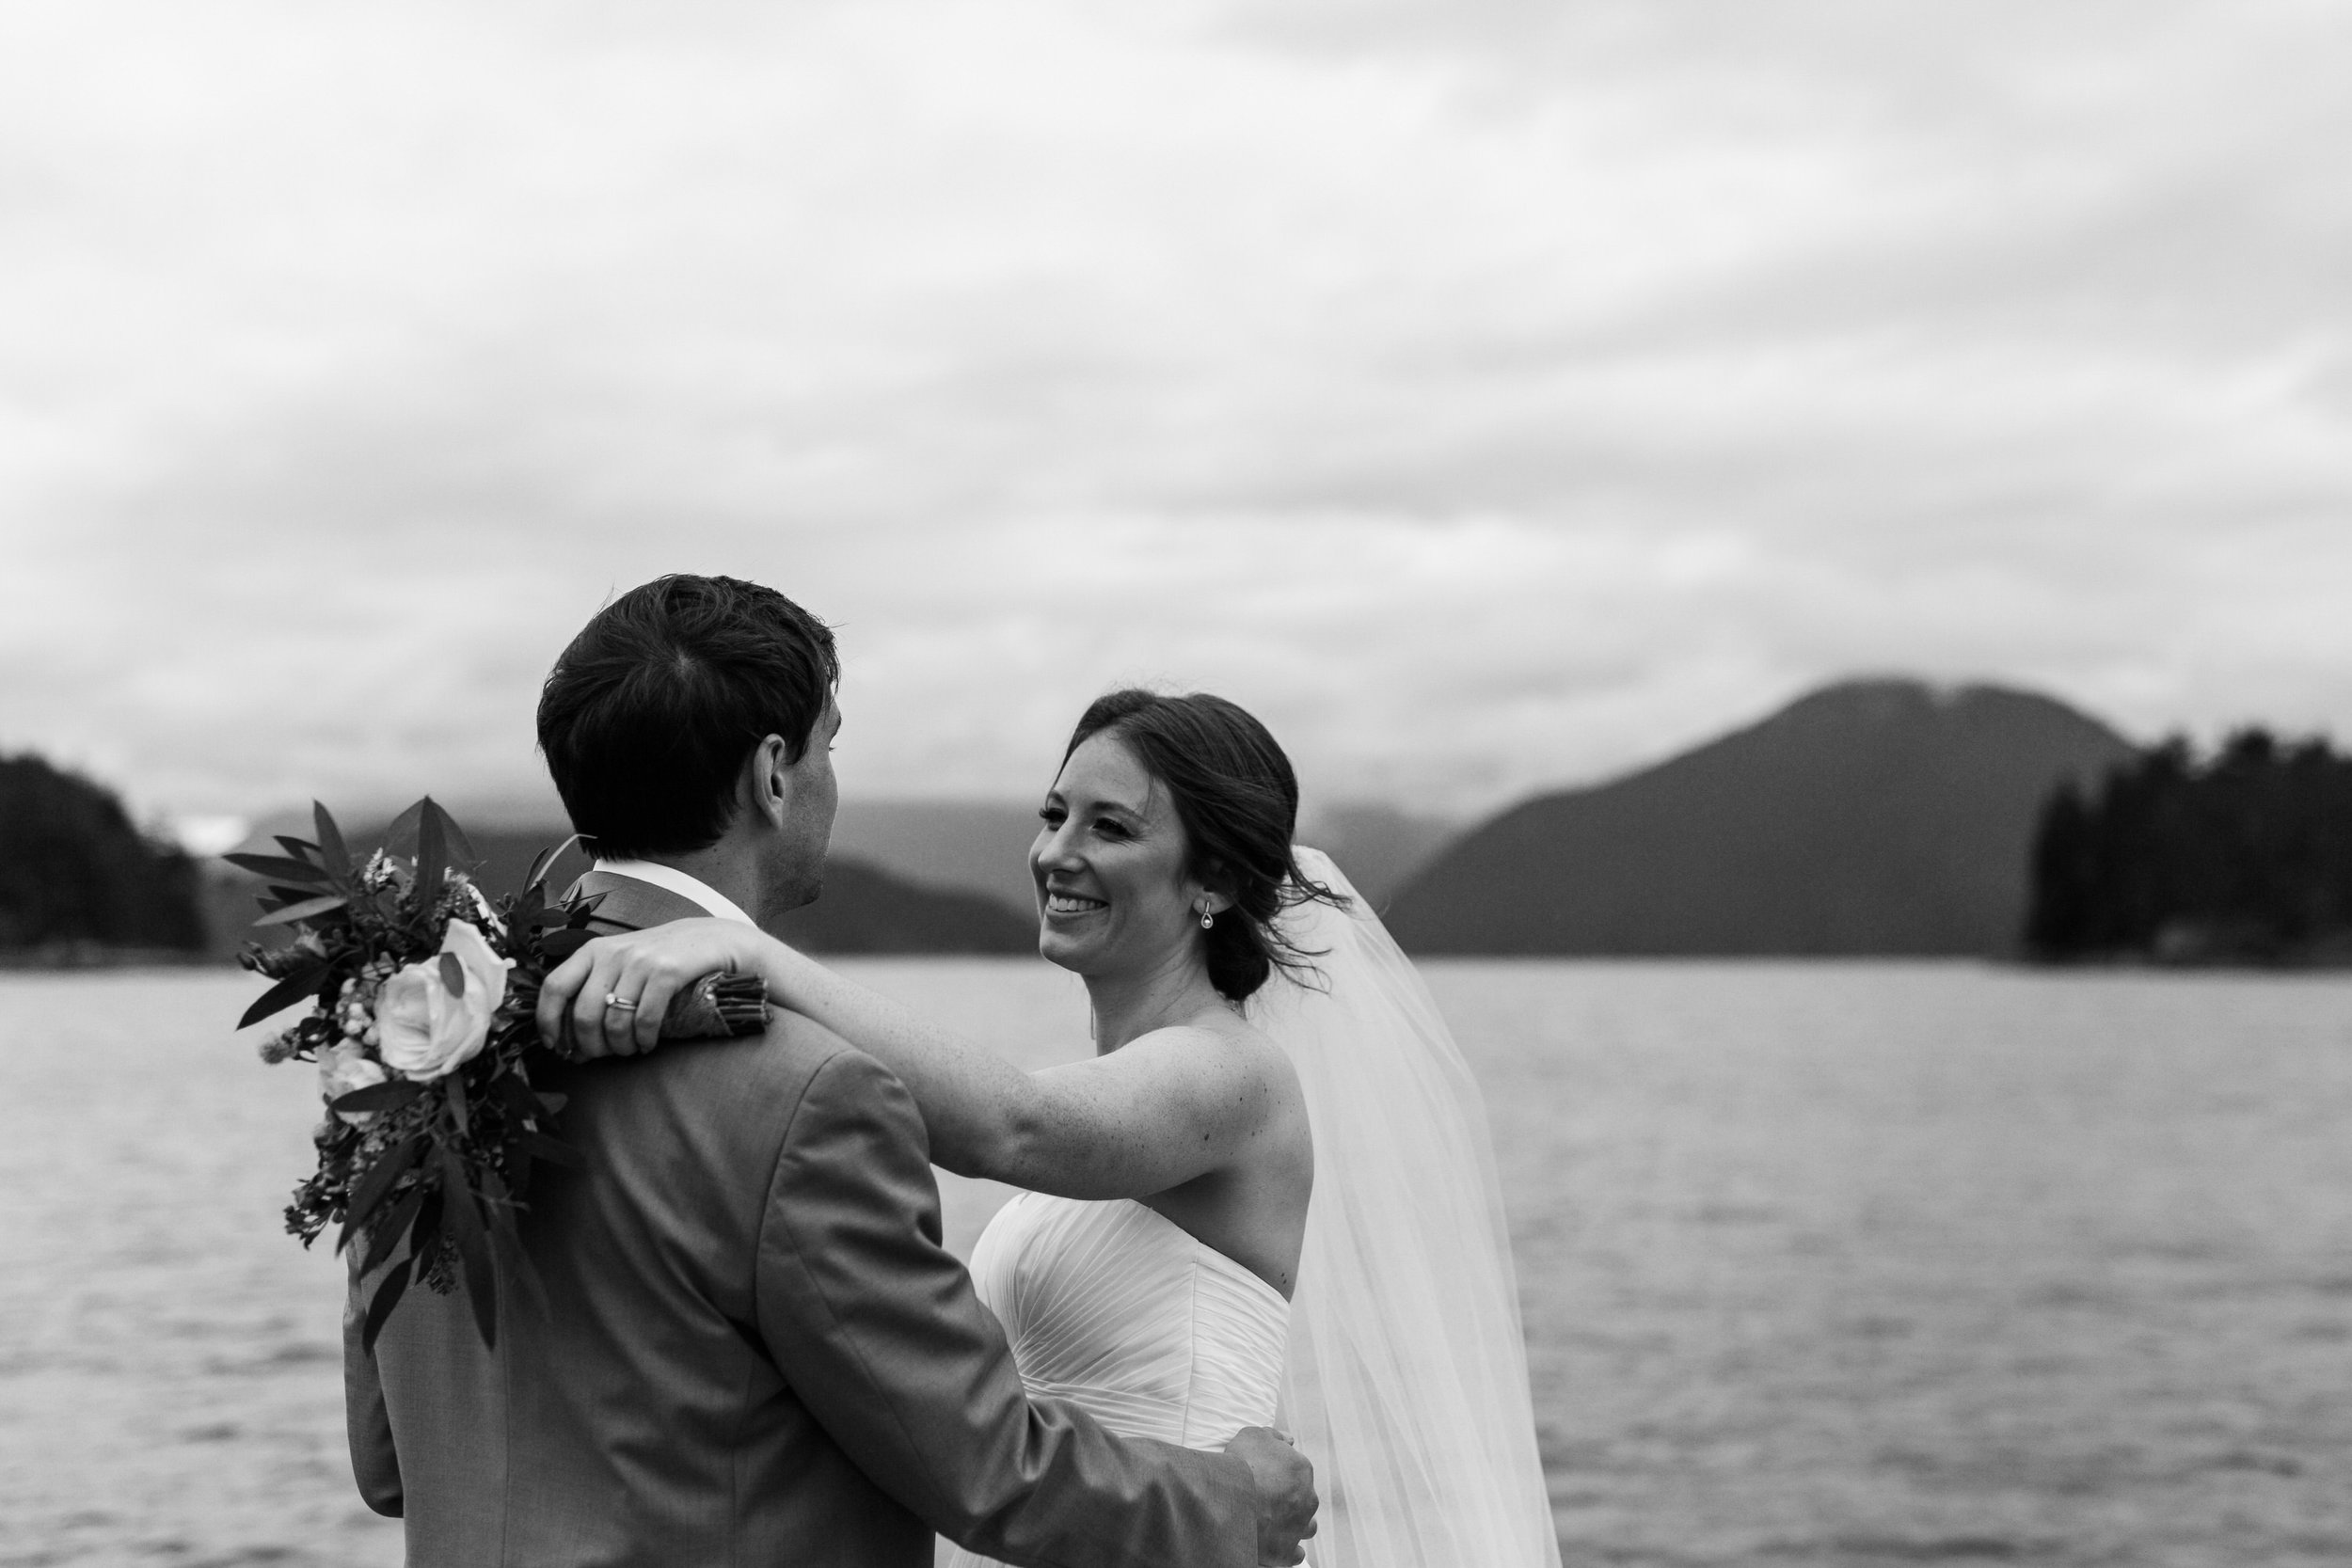 West Coast Wilderness Lodge Wedding Photos - Vancouver Wedding Photographer & Videographer - Sunshine Coast Wedding Photos - Sunshine Coast Wedding Photographer - Jennifer Picard Photography - IMG_6580.jpg